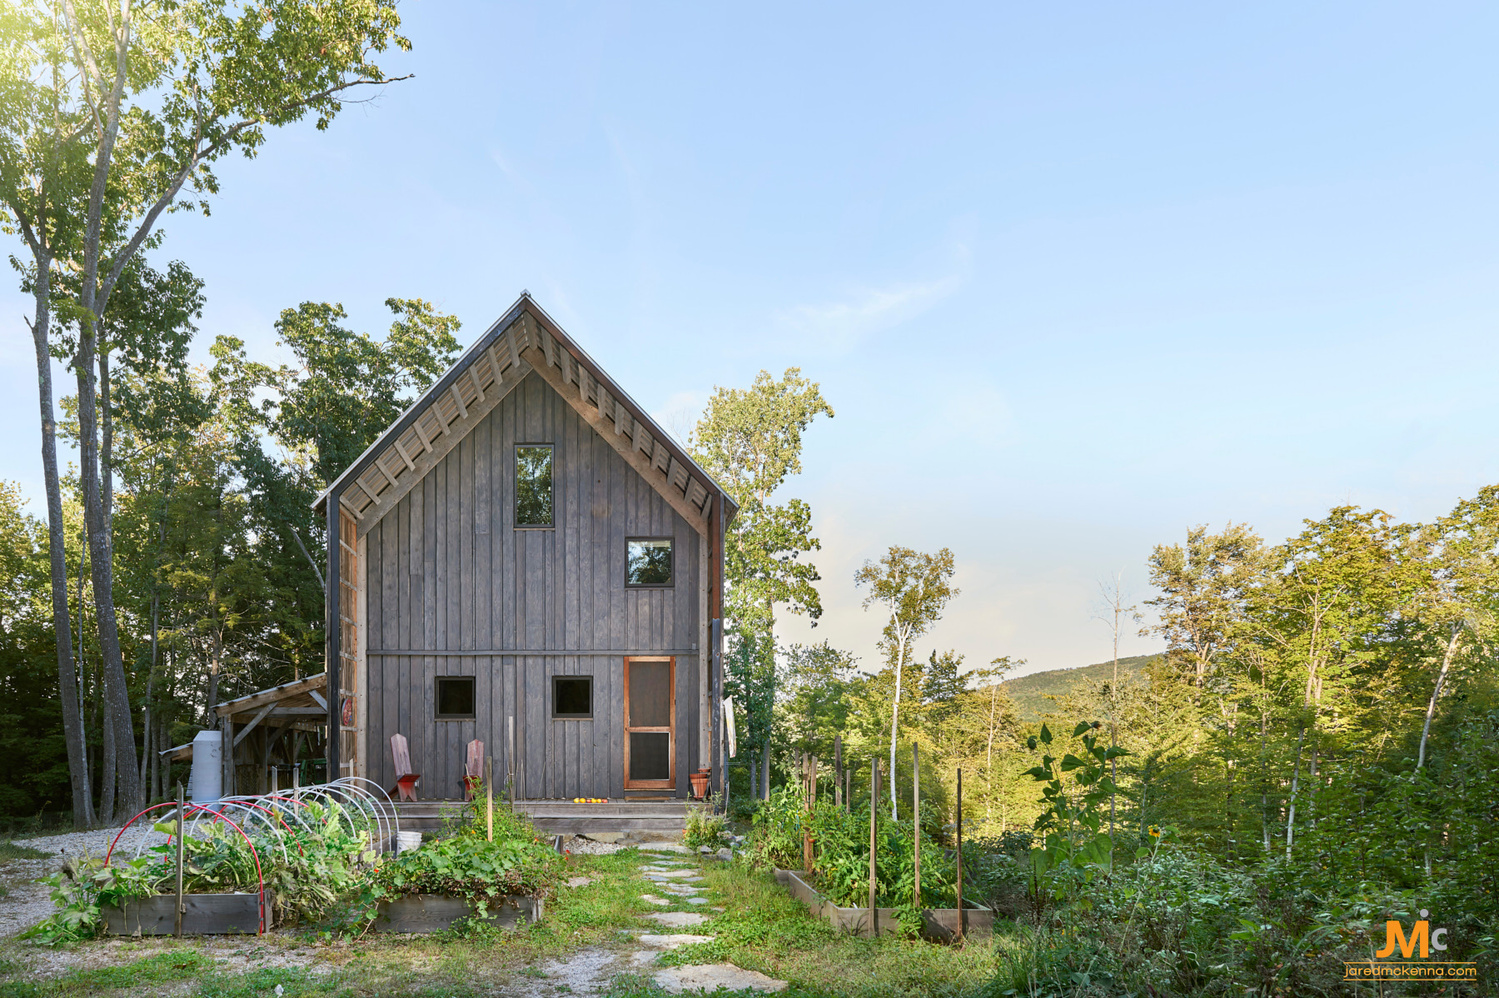 The Eagle Pond House by Jared McKenna